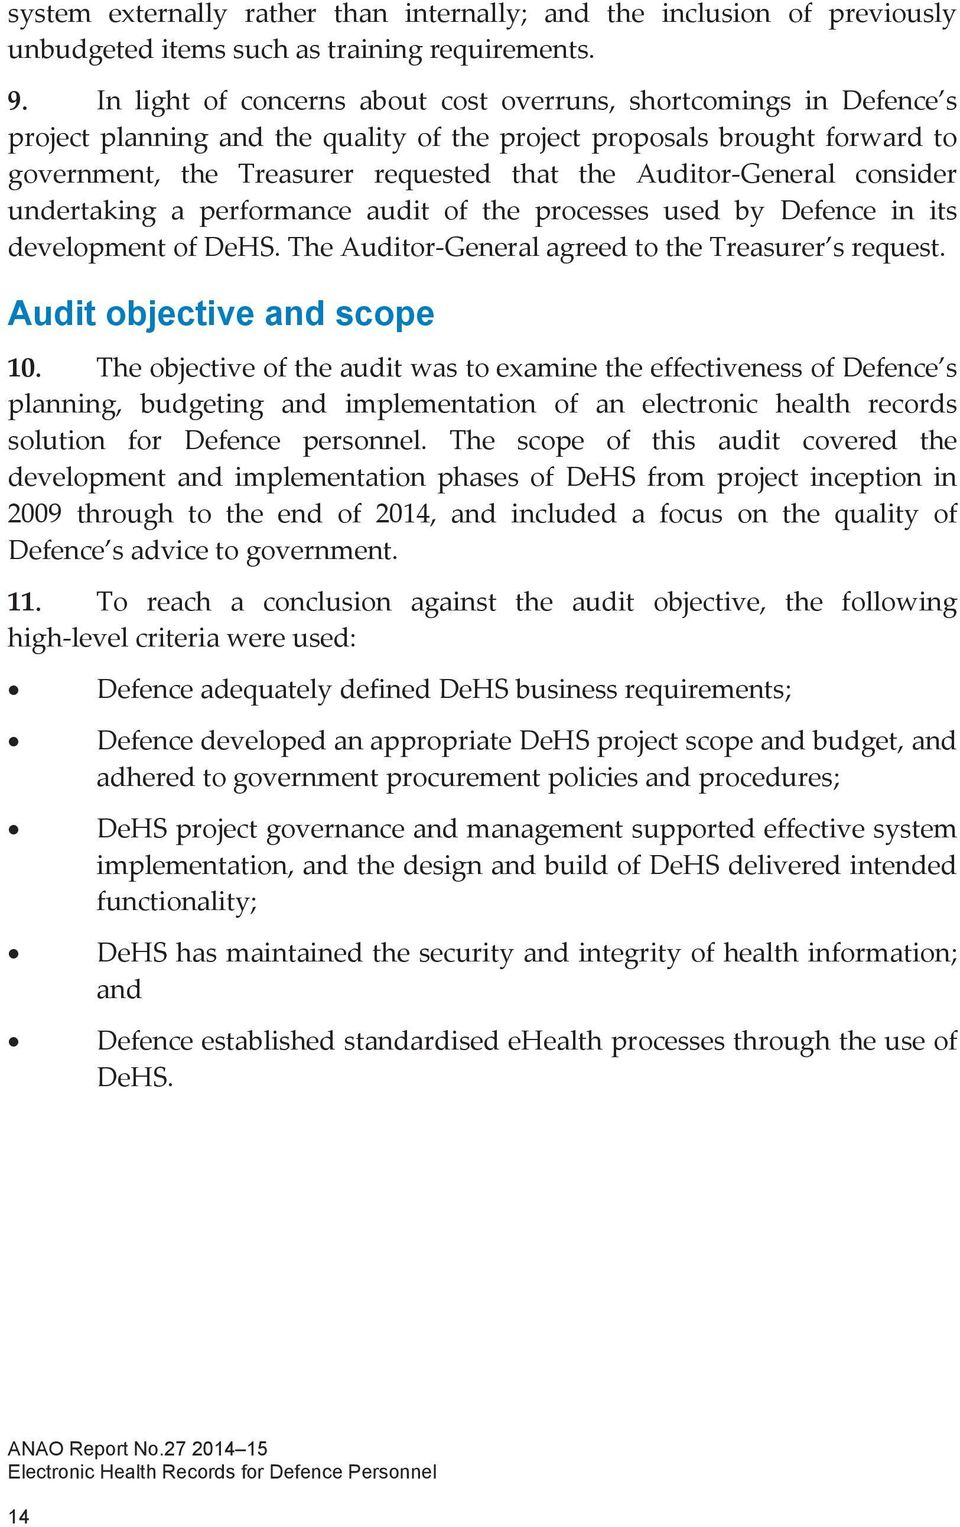 General consider undertaking a performance audit of the processes used by Defence in its development of DeHS. The Auditor General agreed to the Treasurer s request. Audit objective and scope 10.